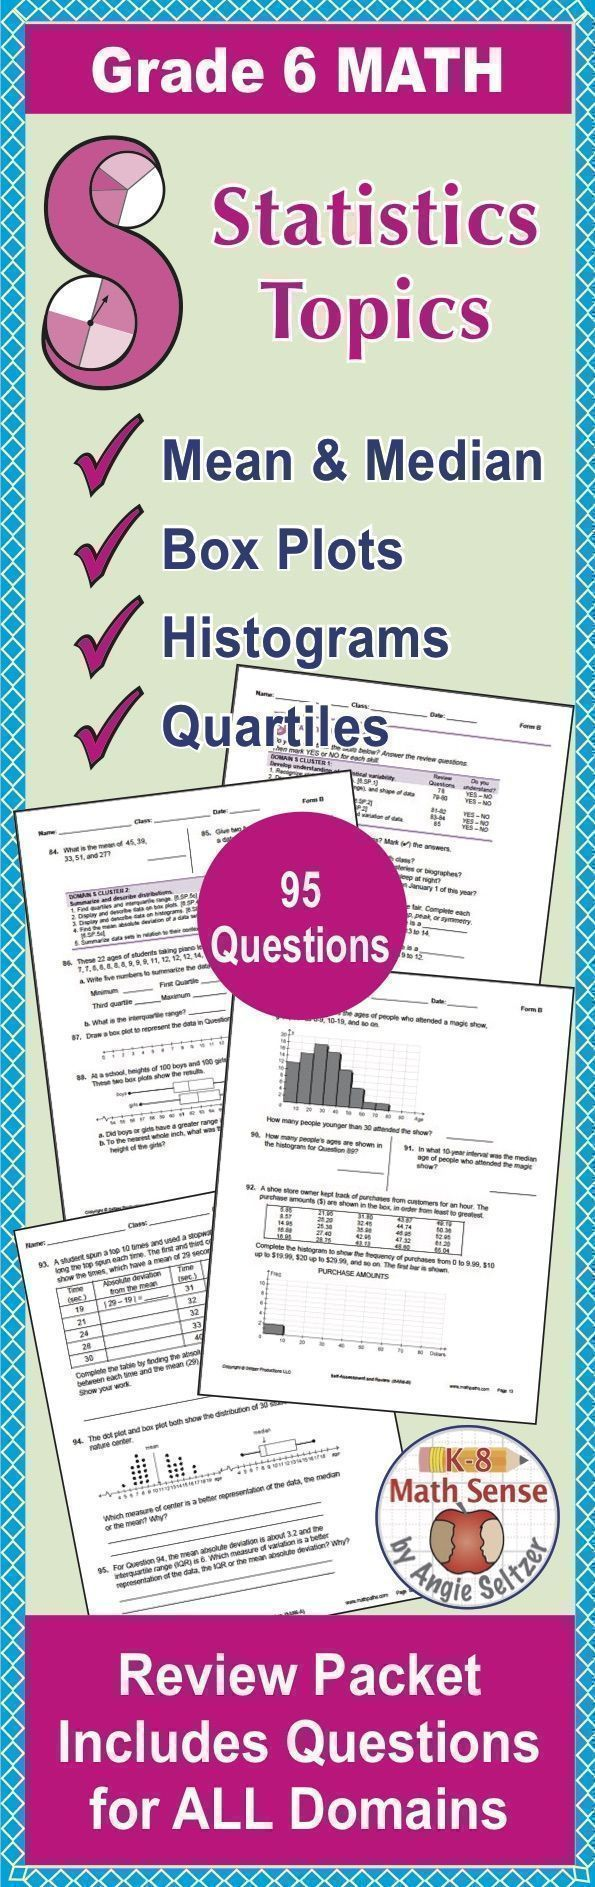 Review all sixth grade math topics including mean, median, box plots, histograms, quartiles, and more! This comprehensive review packet, Form D, is parallel to Forms A, B, and C so you can check progress all year.